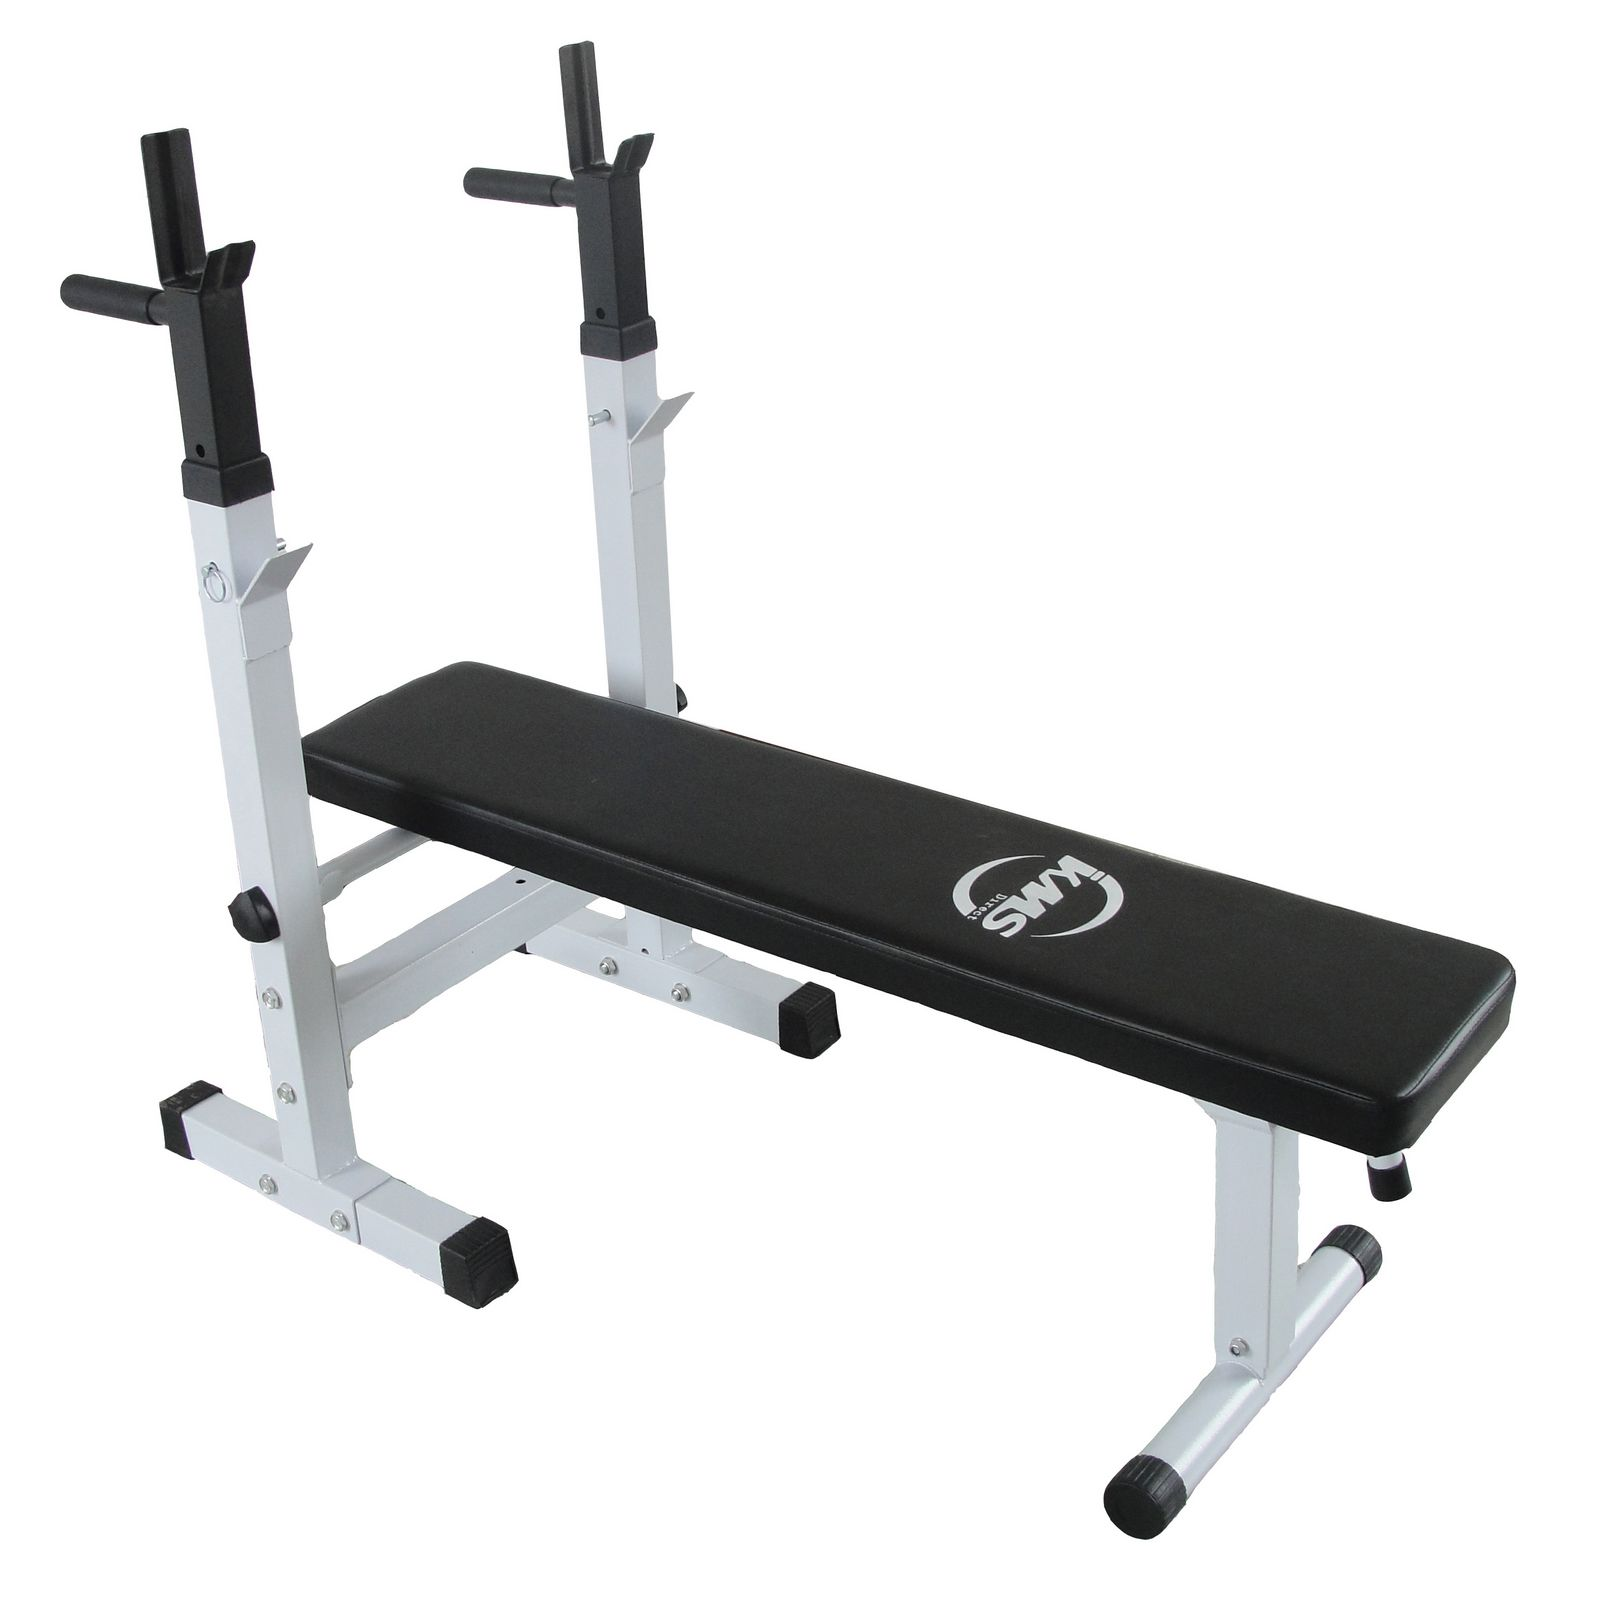 Fitness Gym Shoulder Chest Press Sit Up Weight Bench Barbell Workout Heavy Duty Ebay